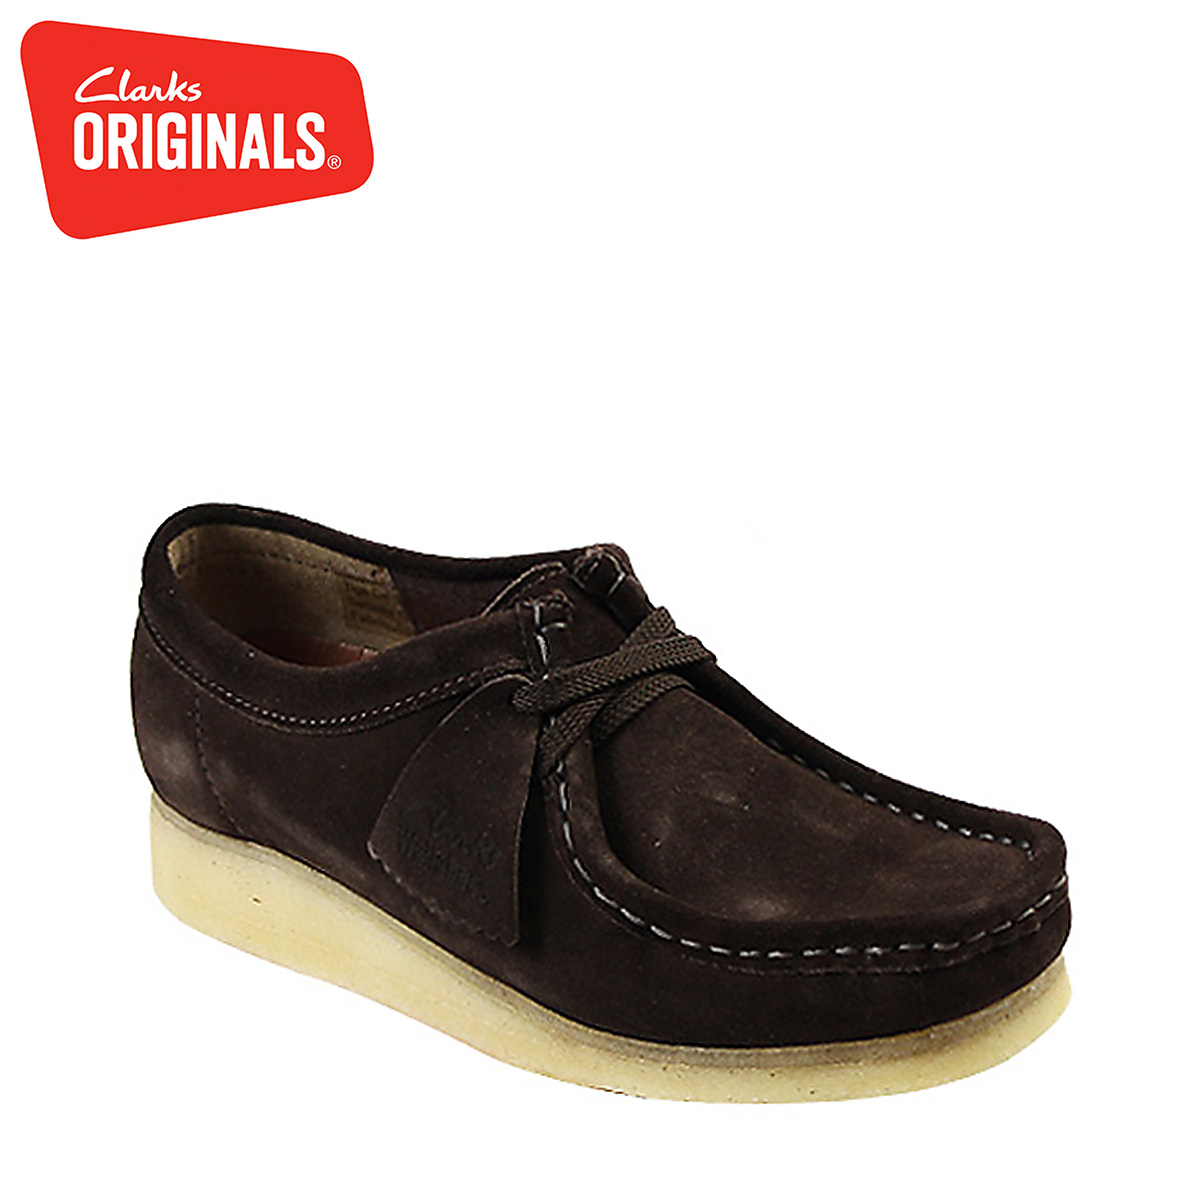 5f23252da112d The sub-brand souls stuck to making shoes always cherished the original  founder of the backbone of the Clarks said.